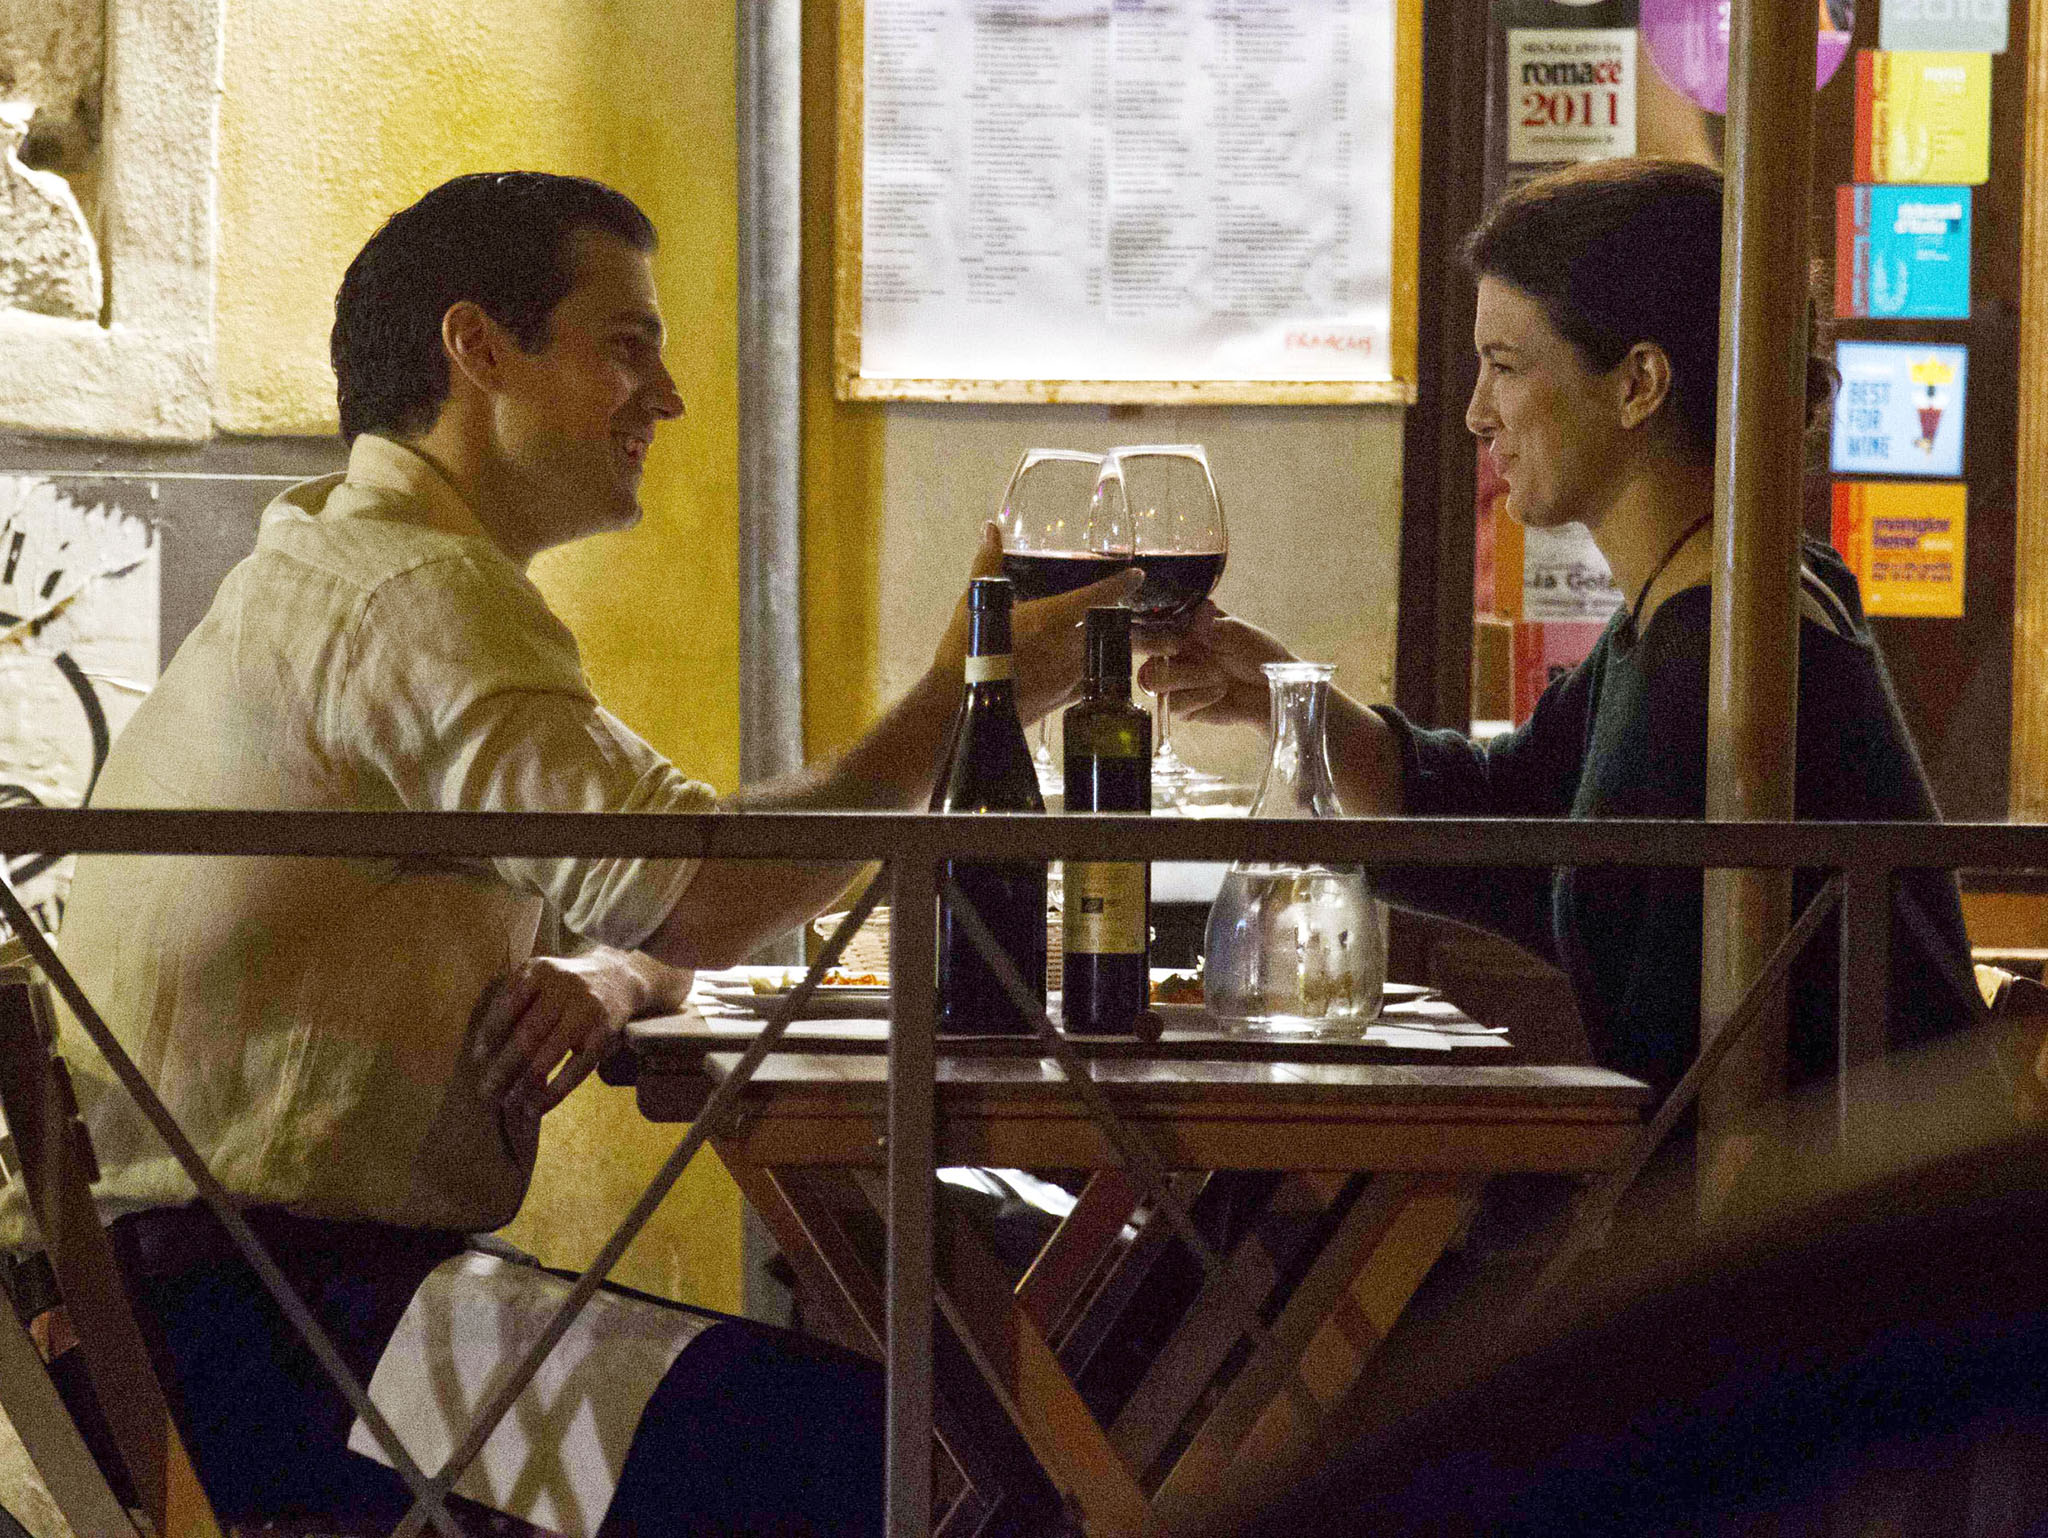 Henry Cavill and Gina Carano on October 7. (XPOSUREPHOTOS.COM)